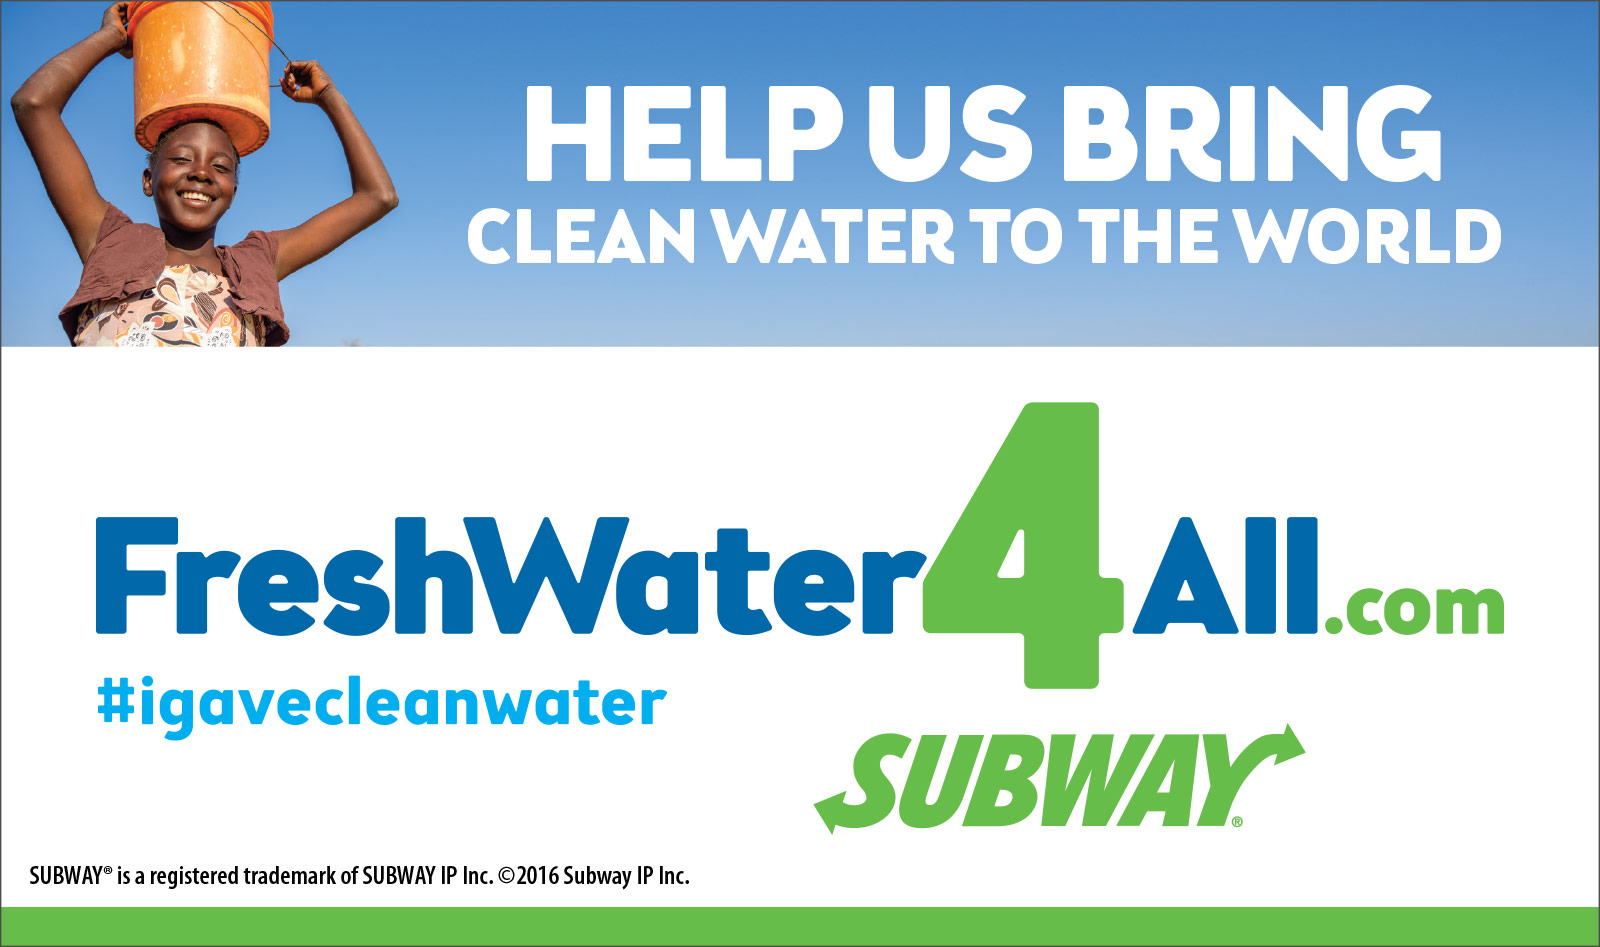 Subway: FreshWater4All Digital Ad